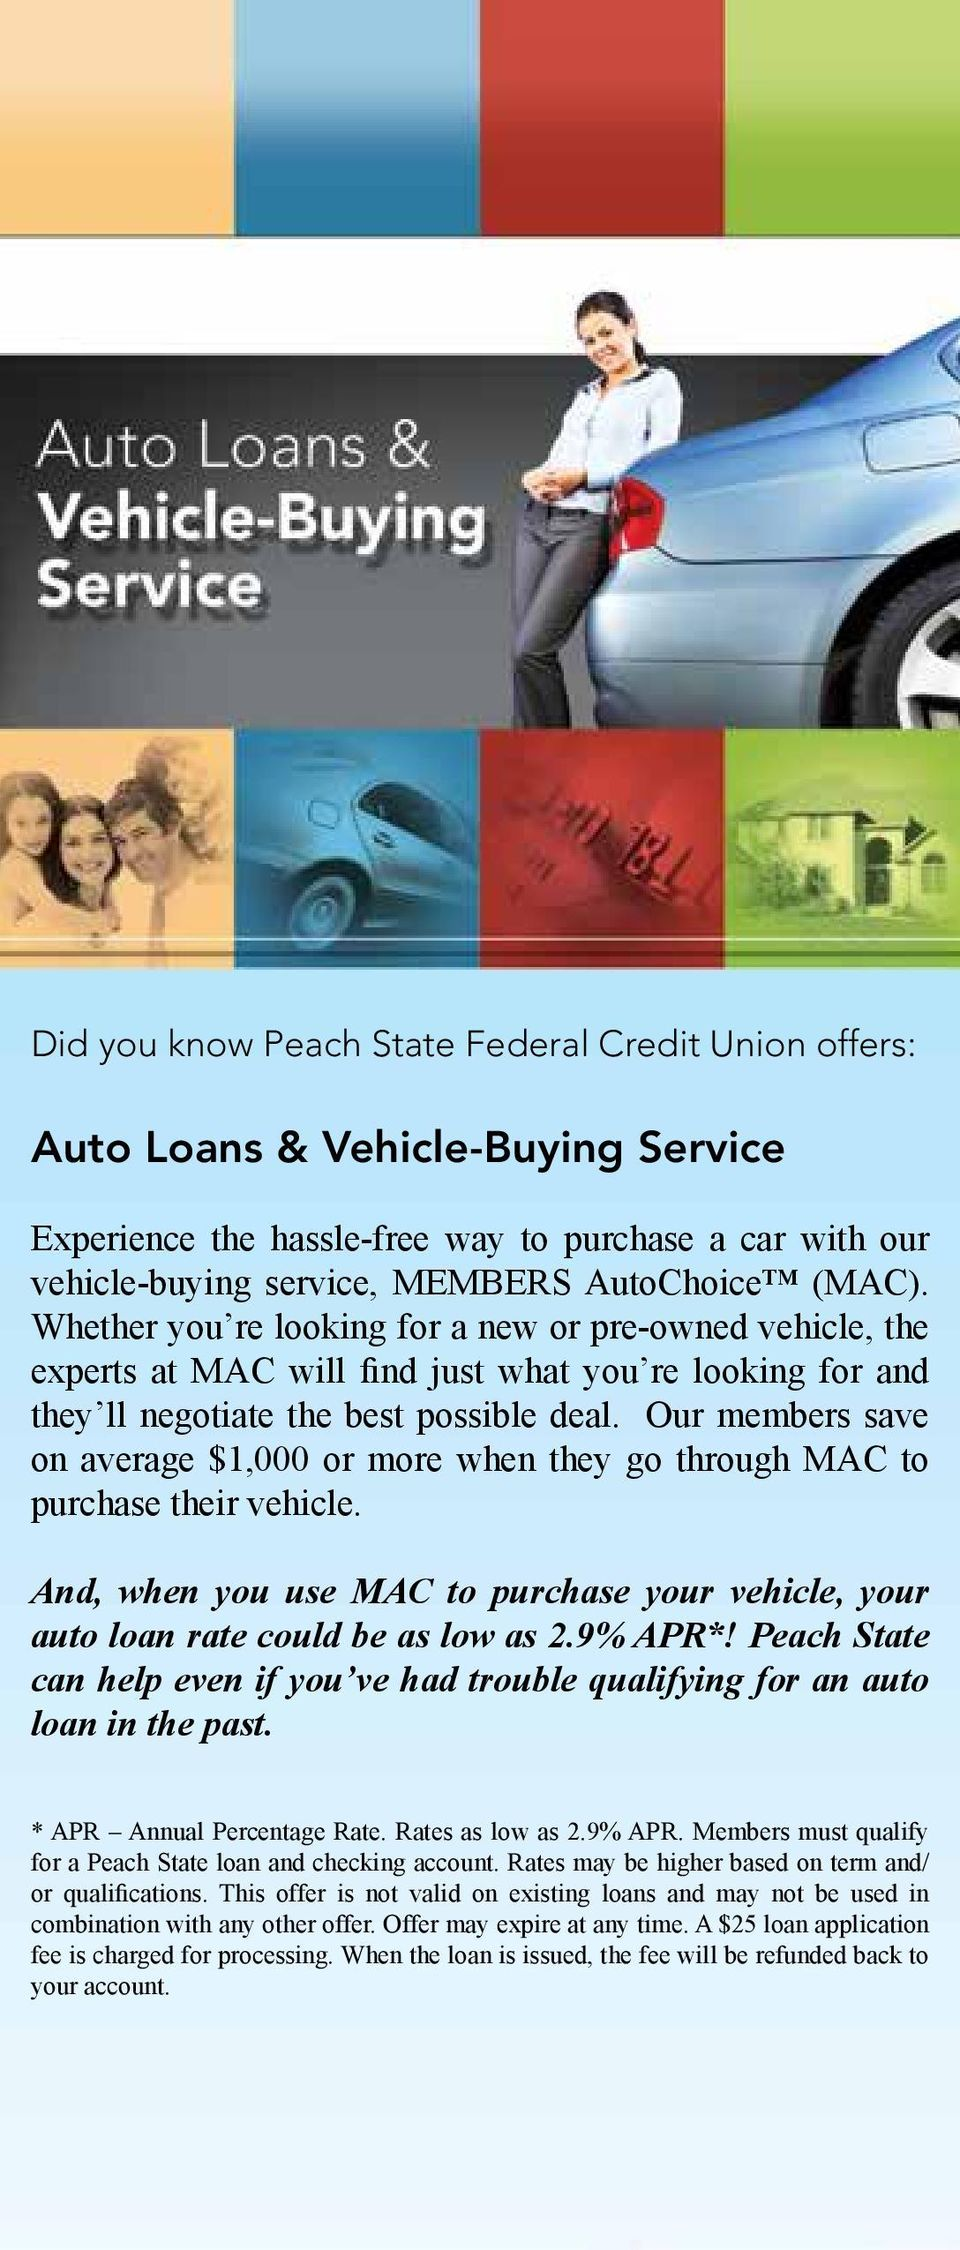 Our members save on average $1,000 or more when they go through MAC to purchase their vehicle. And, when you use MAC to purchase your vehicle, your auto loan rate could be as low as 2.9% APR*!